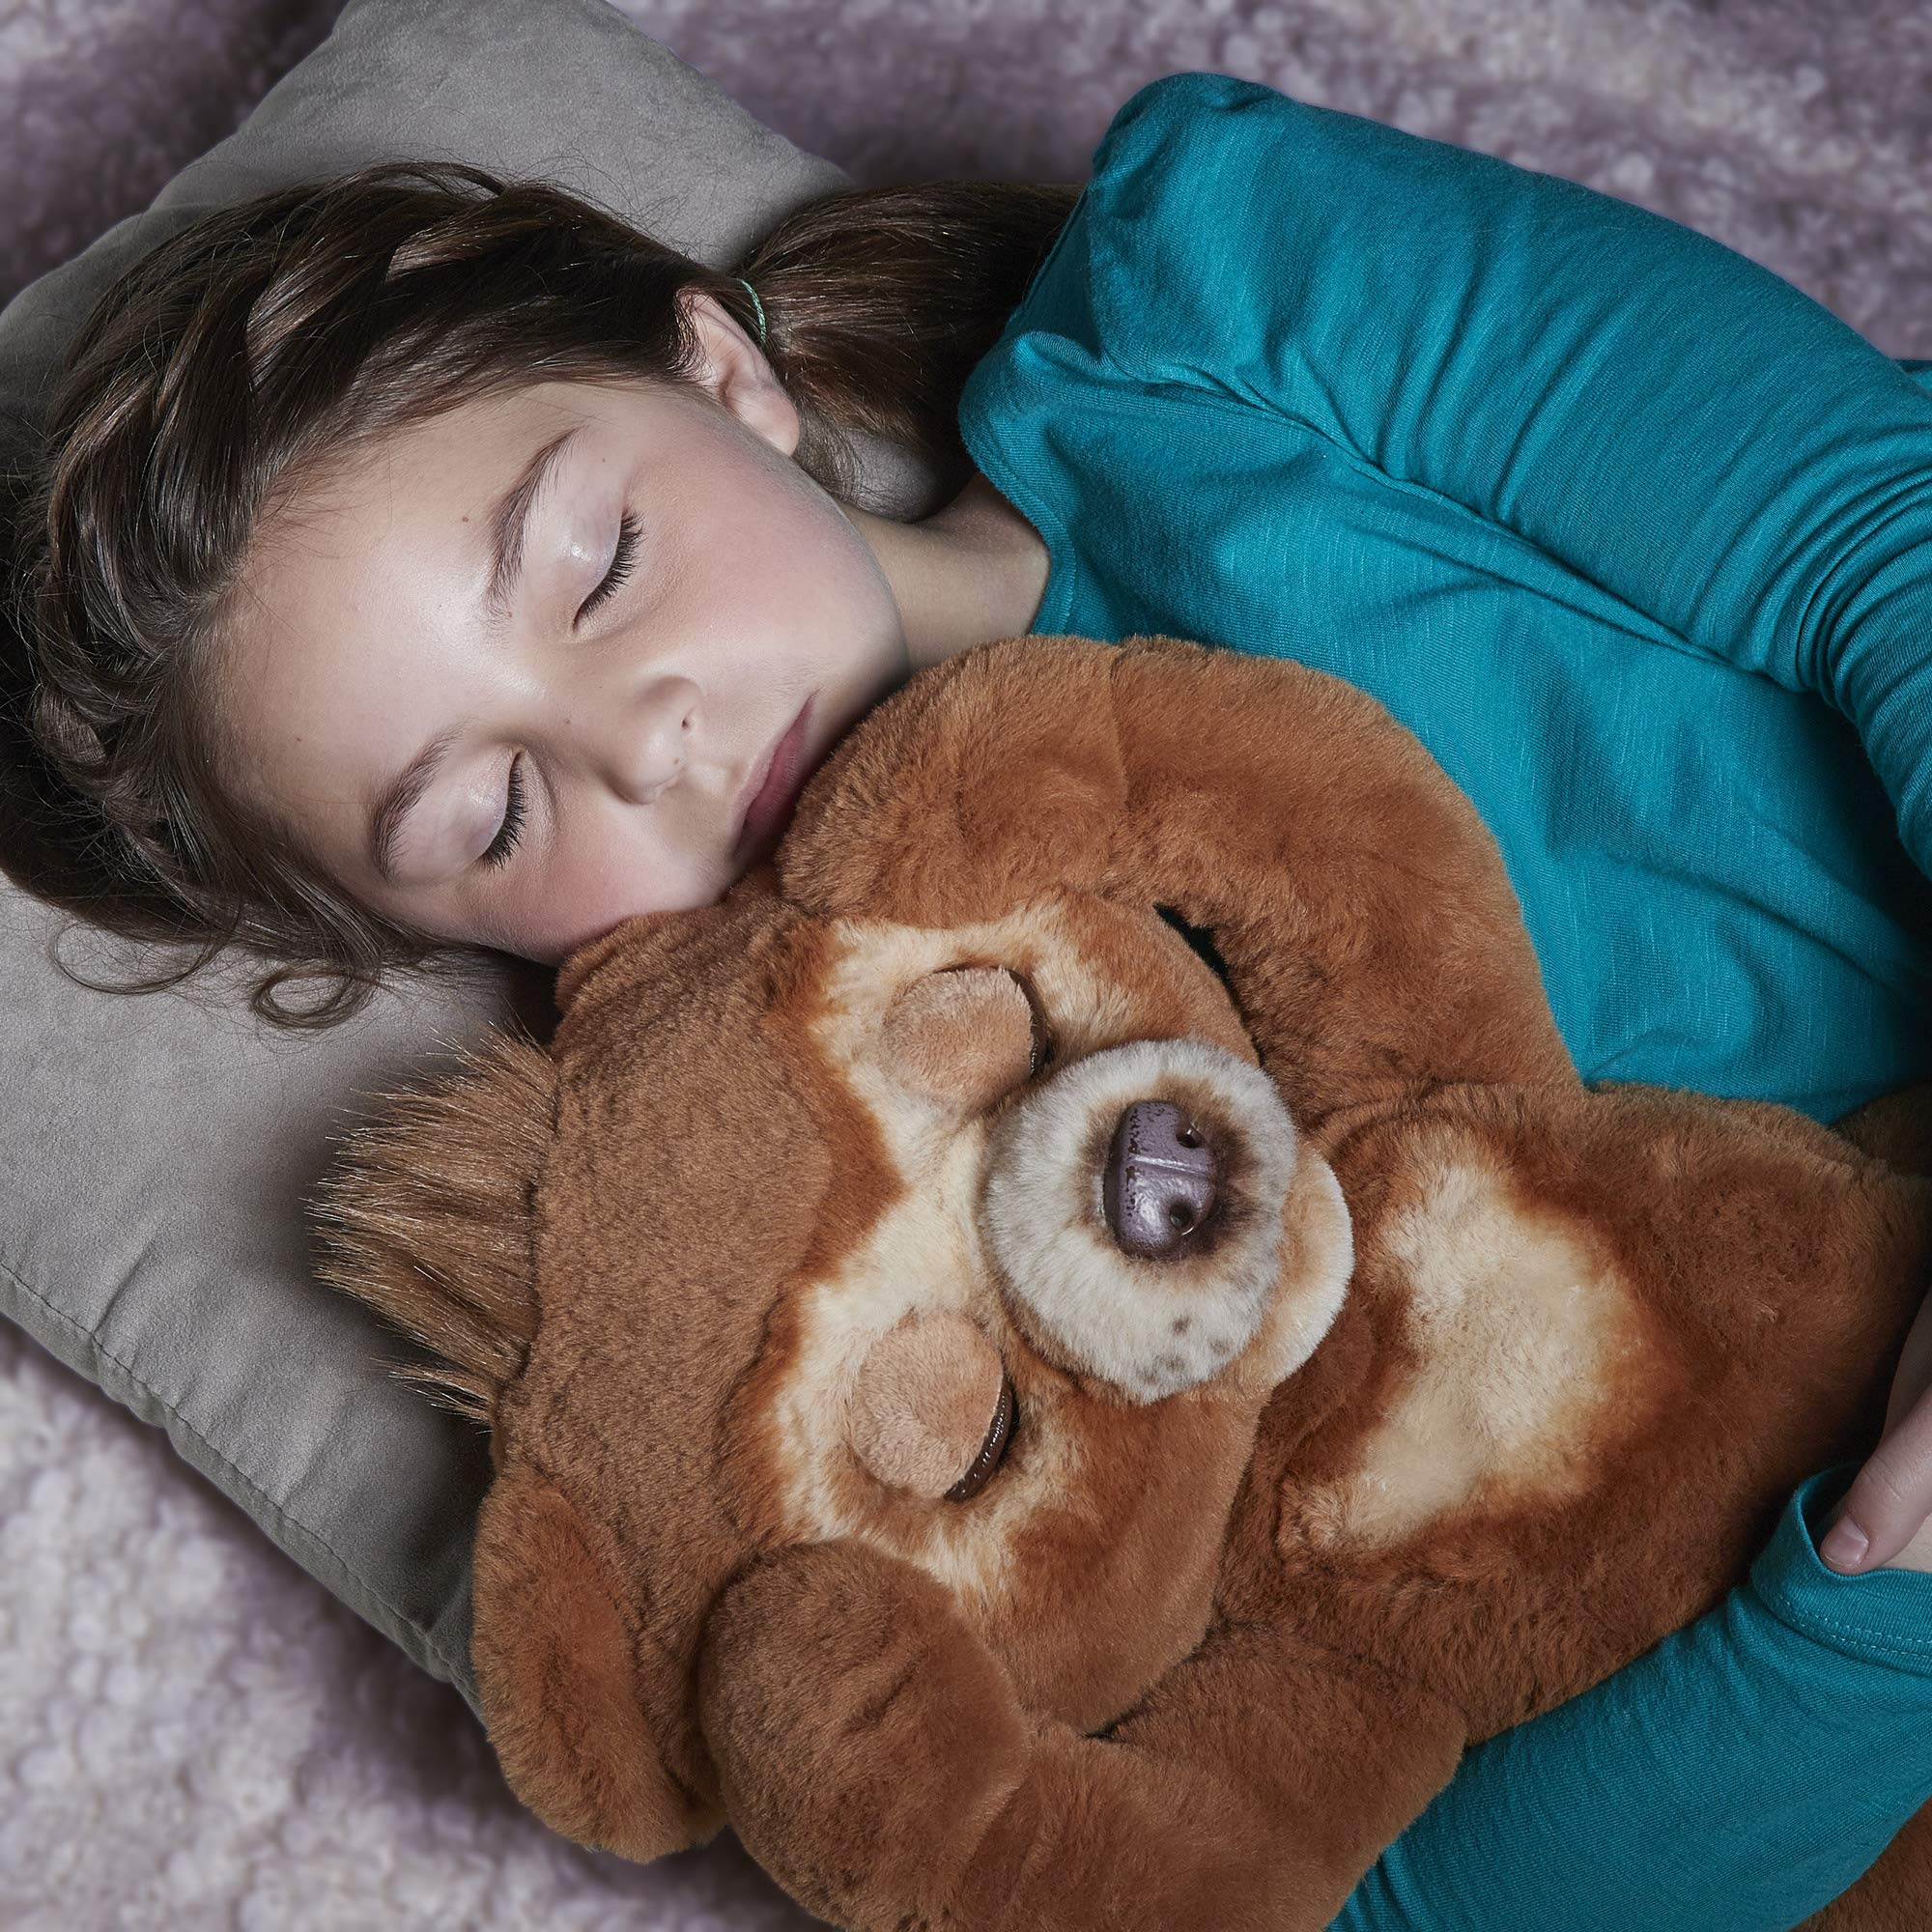 FurReal Cubby, The Curious Bear Interactive Plush Toy, Ages 4 and Up by FurReal (Image #8)